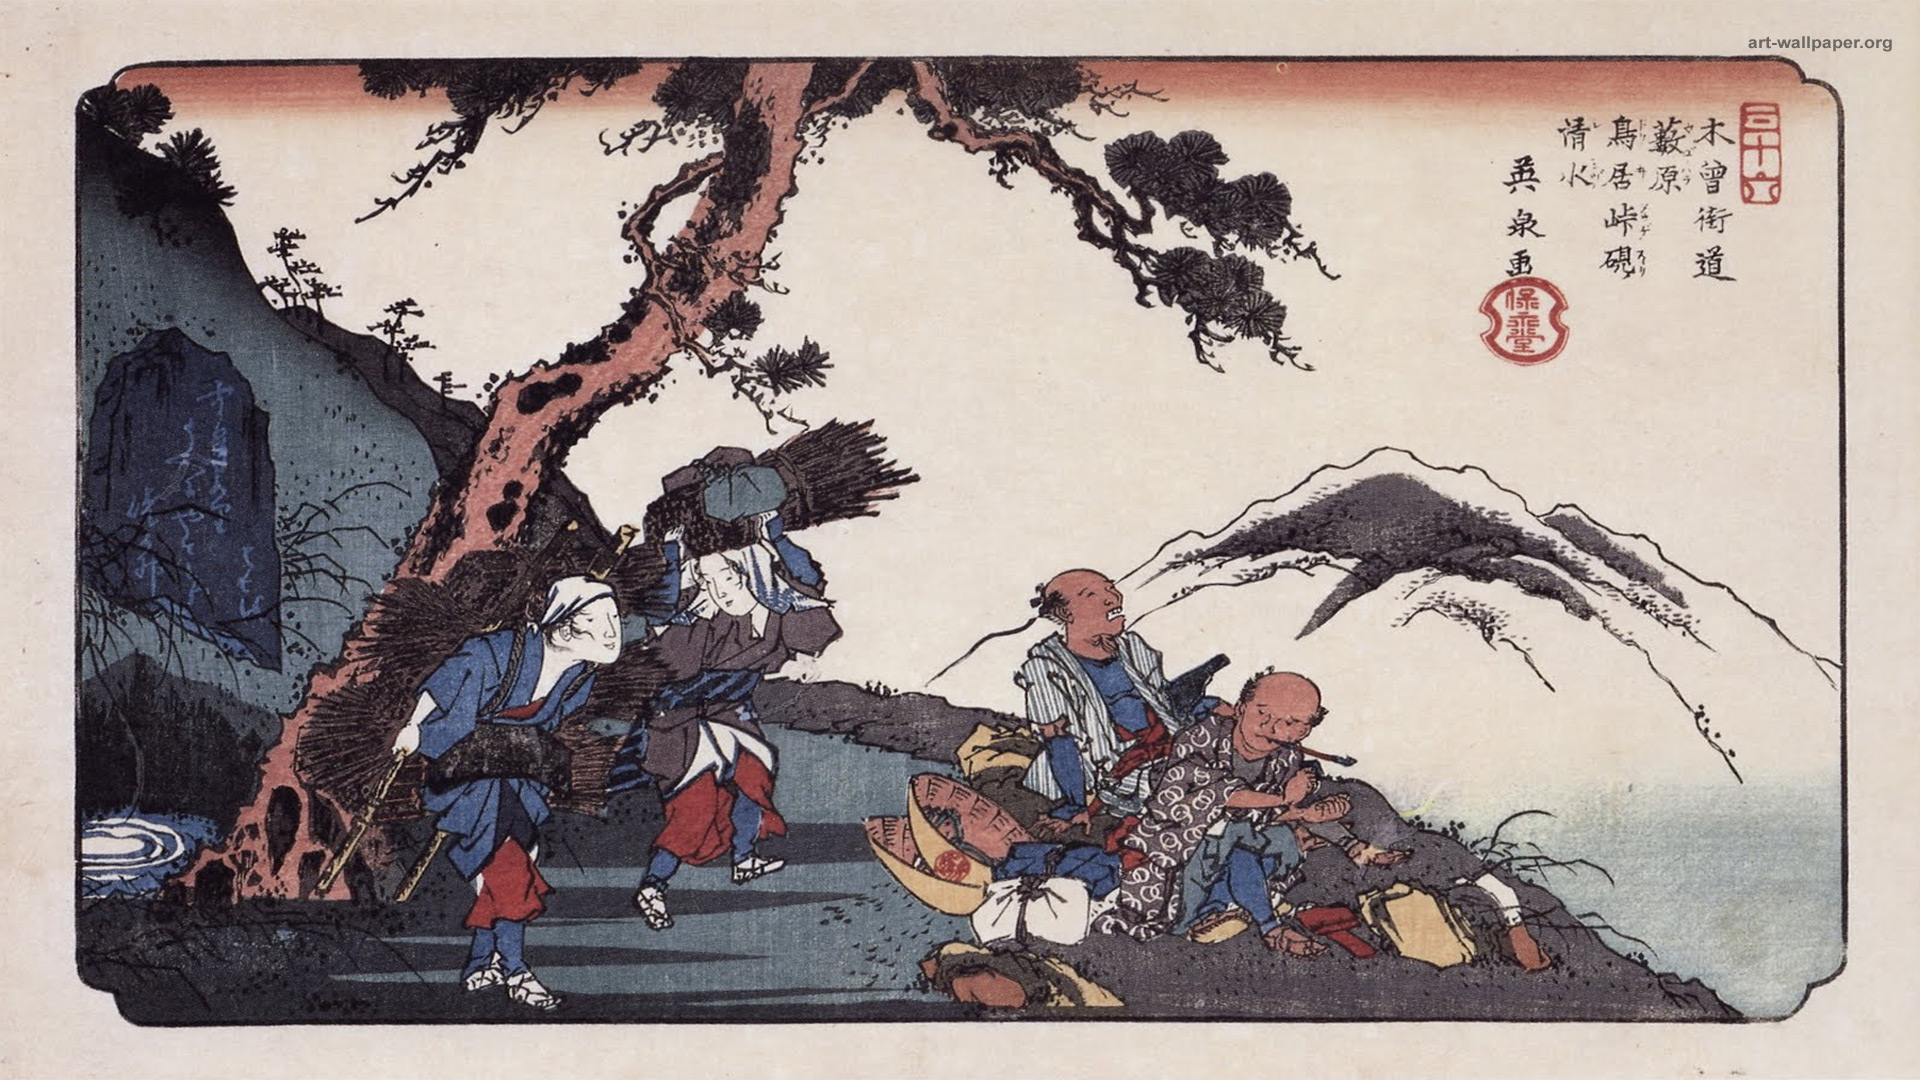 49+] Japanese Woodblock Wallpaper on